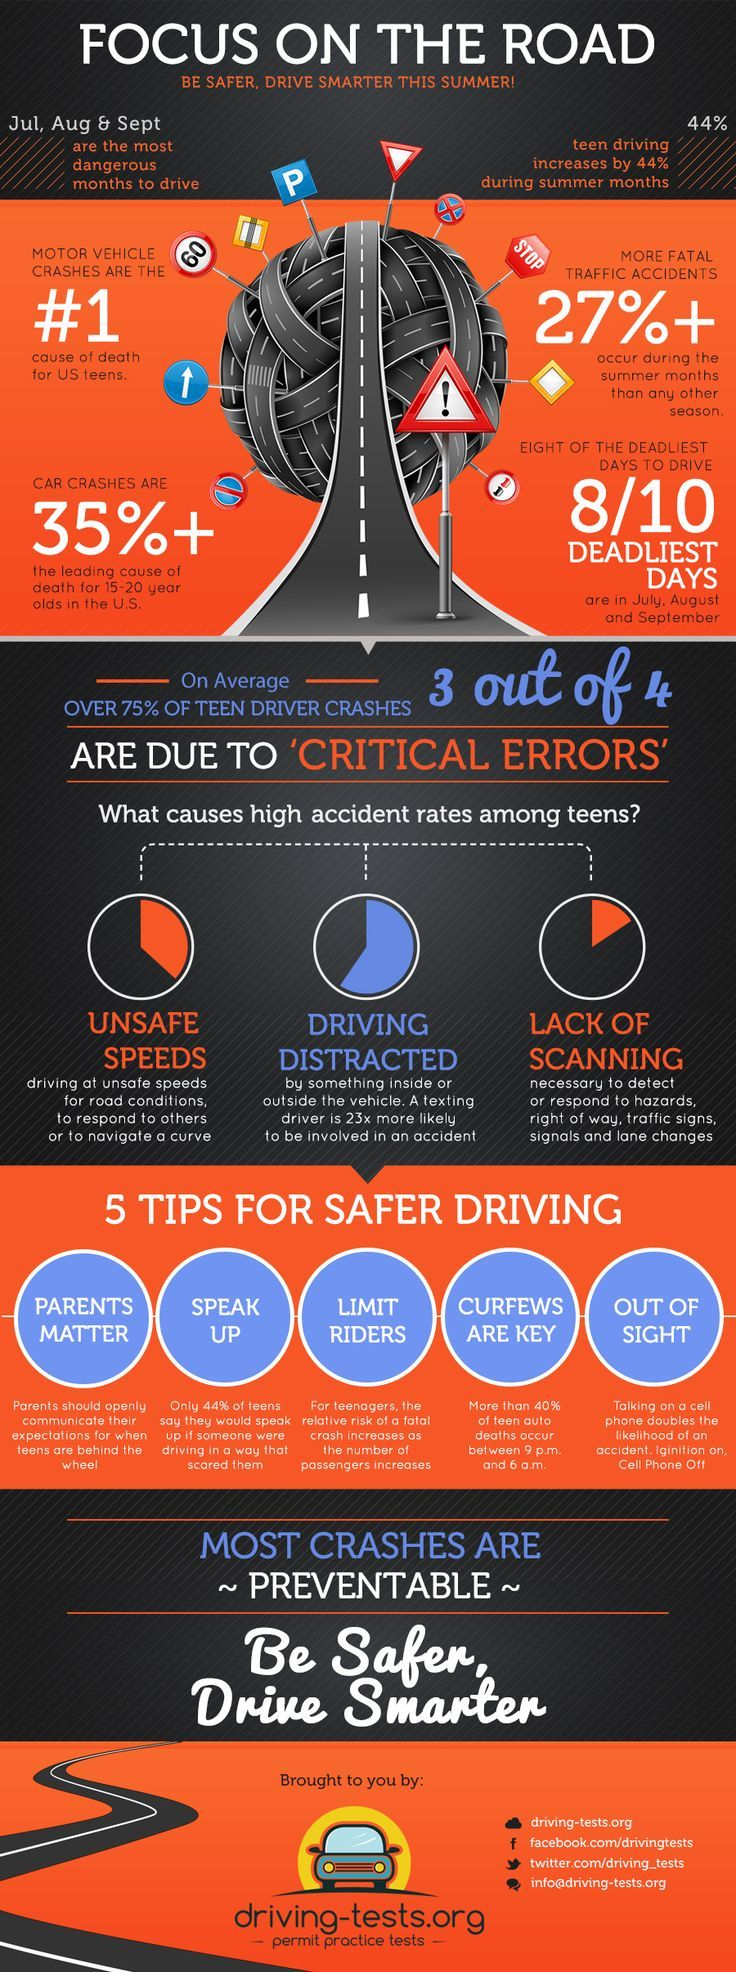 """Focus on the Road: Infographic - This infographic is presented by Driving-Tests.org, a leading online educational learning site that offers free practice permit tests for US learner drivers. This summer, Driving-Tests.org is helping to promote safer driving through the """"Focus on the Road"""" campaign. Designed to help promote best driving practices for teens, this infographic encourages safer summer driving."""